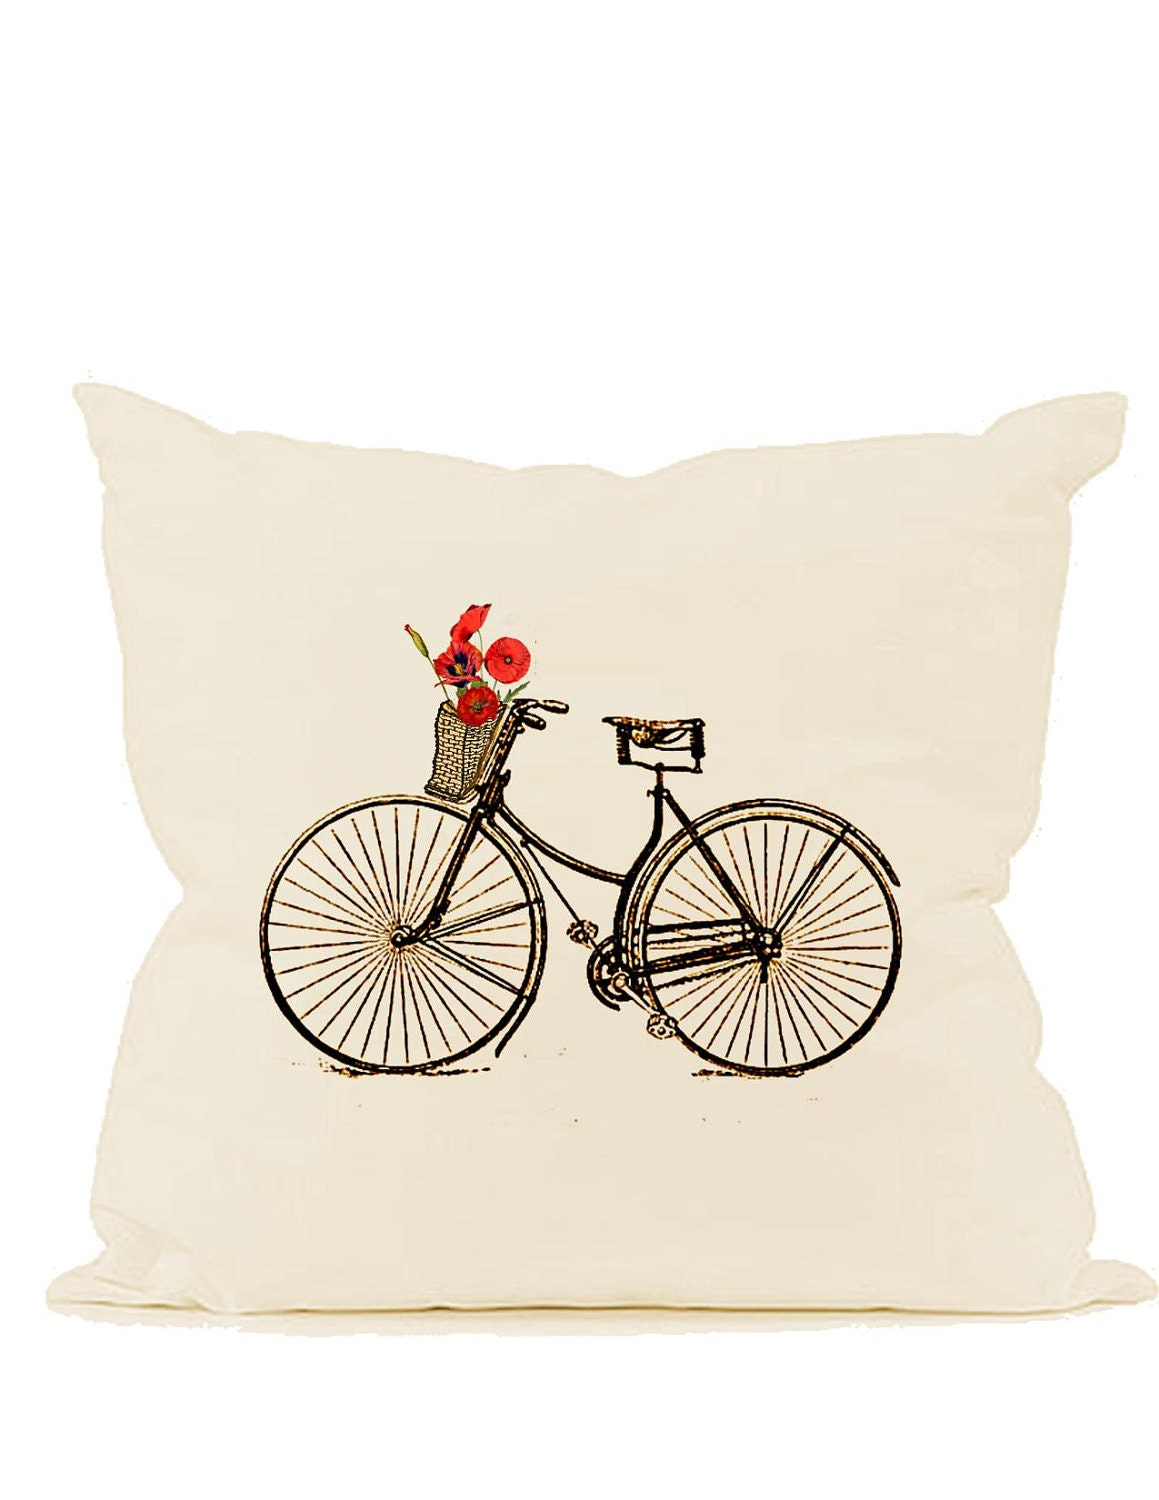 Vintage bicycle digital download image Basket Orange Poppies with or without Paris Streets transfer to fabric paper pillows burlap No. 586